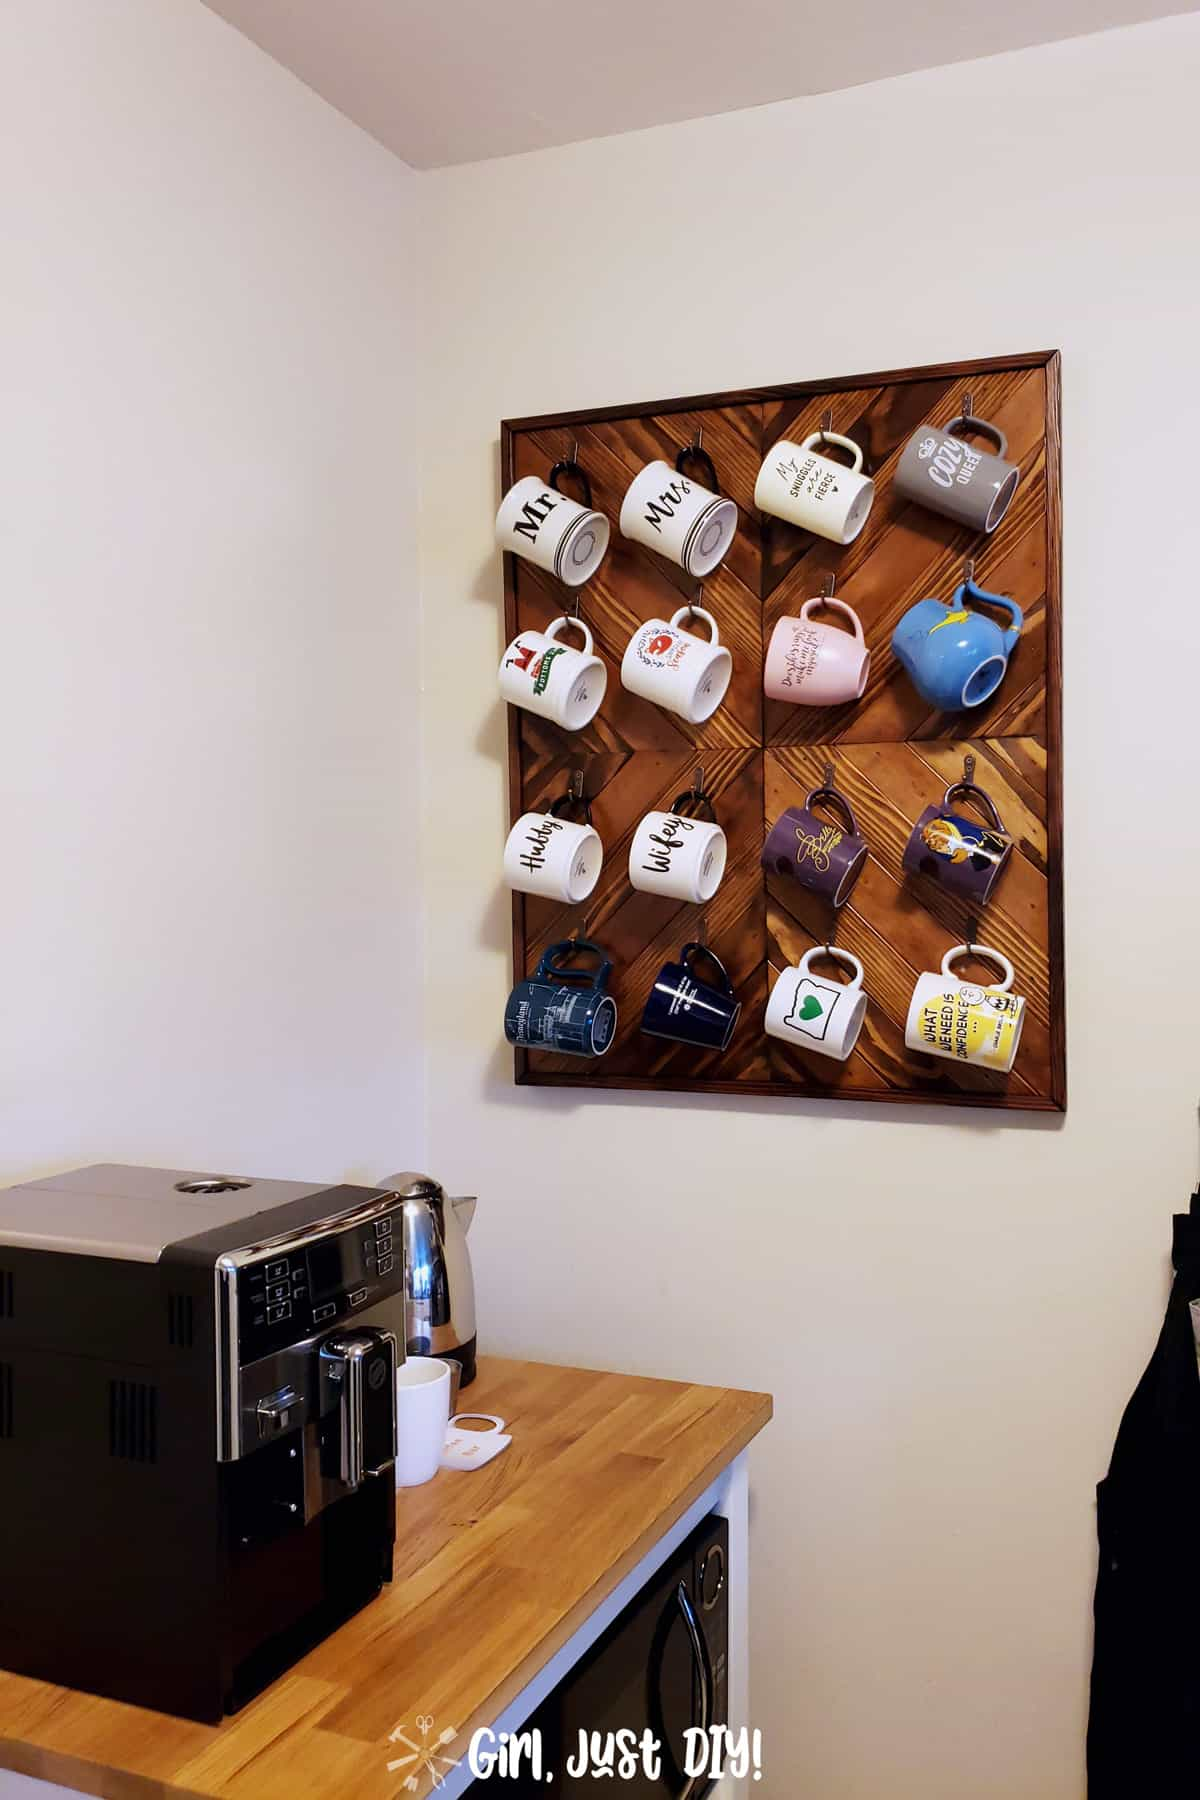 DIY Coffee Mug Rack hanging on wall in kitchen filled with coffee cups.